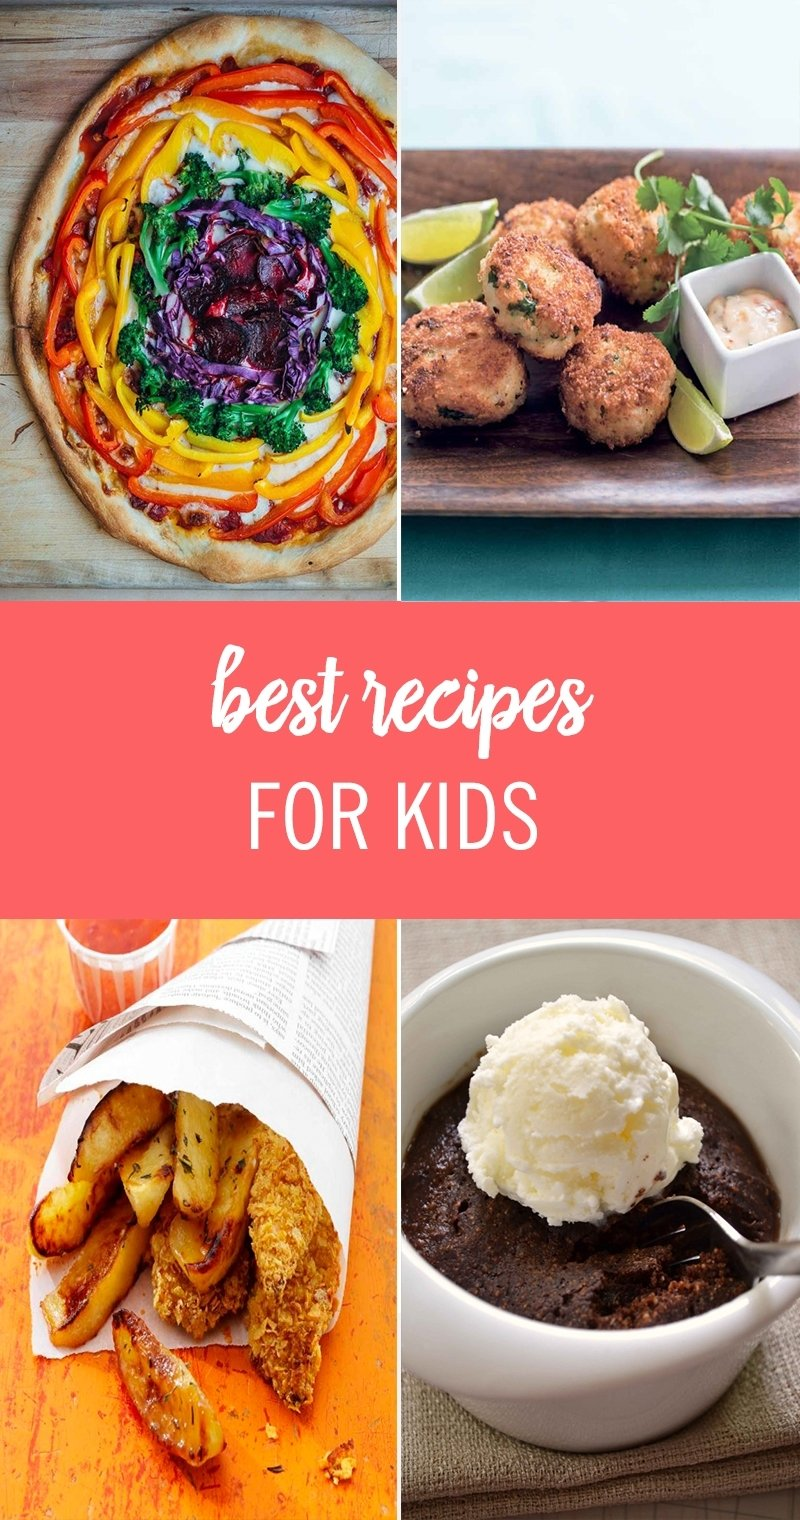 10 Trendy Meal Ideas For Picky Eaters cooking for kids 50 best recipes for kids and picky eaters 17